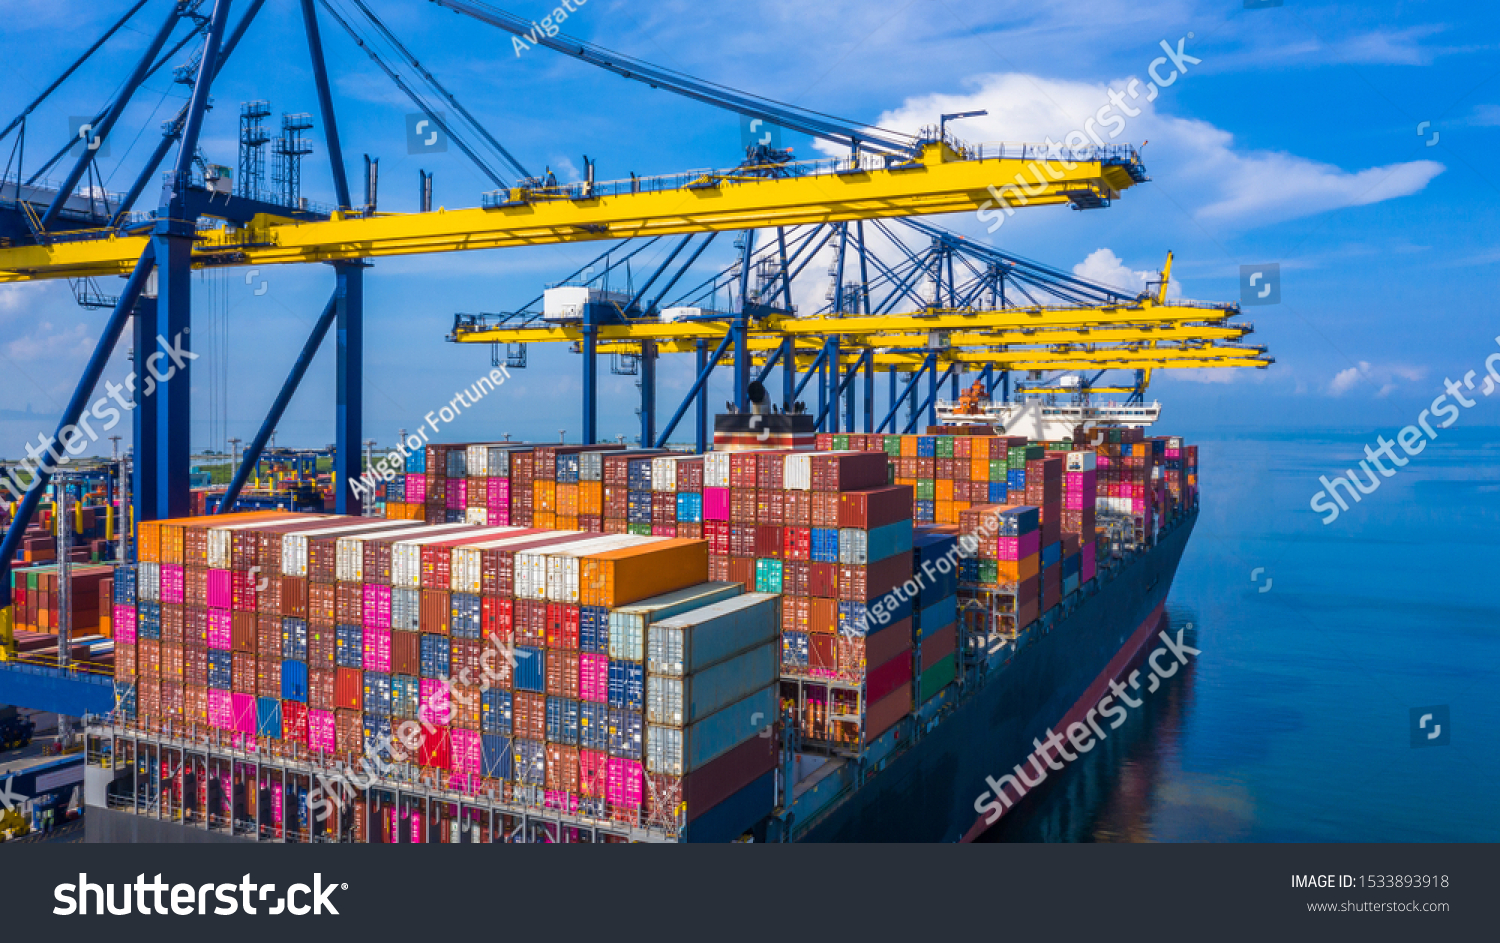 Container cargo ship at industrial port in import export commercial trade business logistic and transportation of international by container cargo ship boat in the open sea, Aerial view industry crane #1533893918